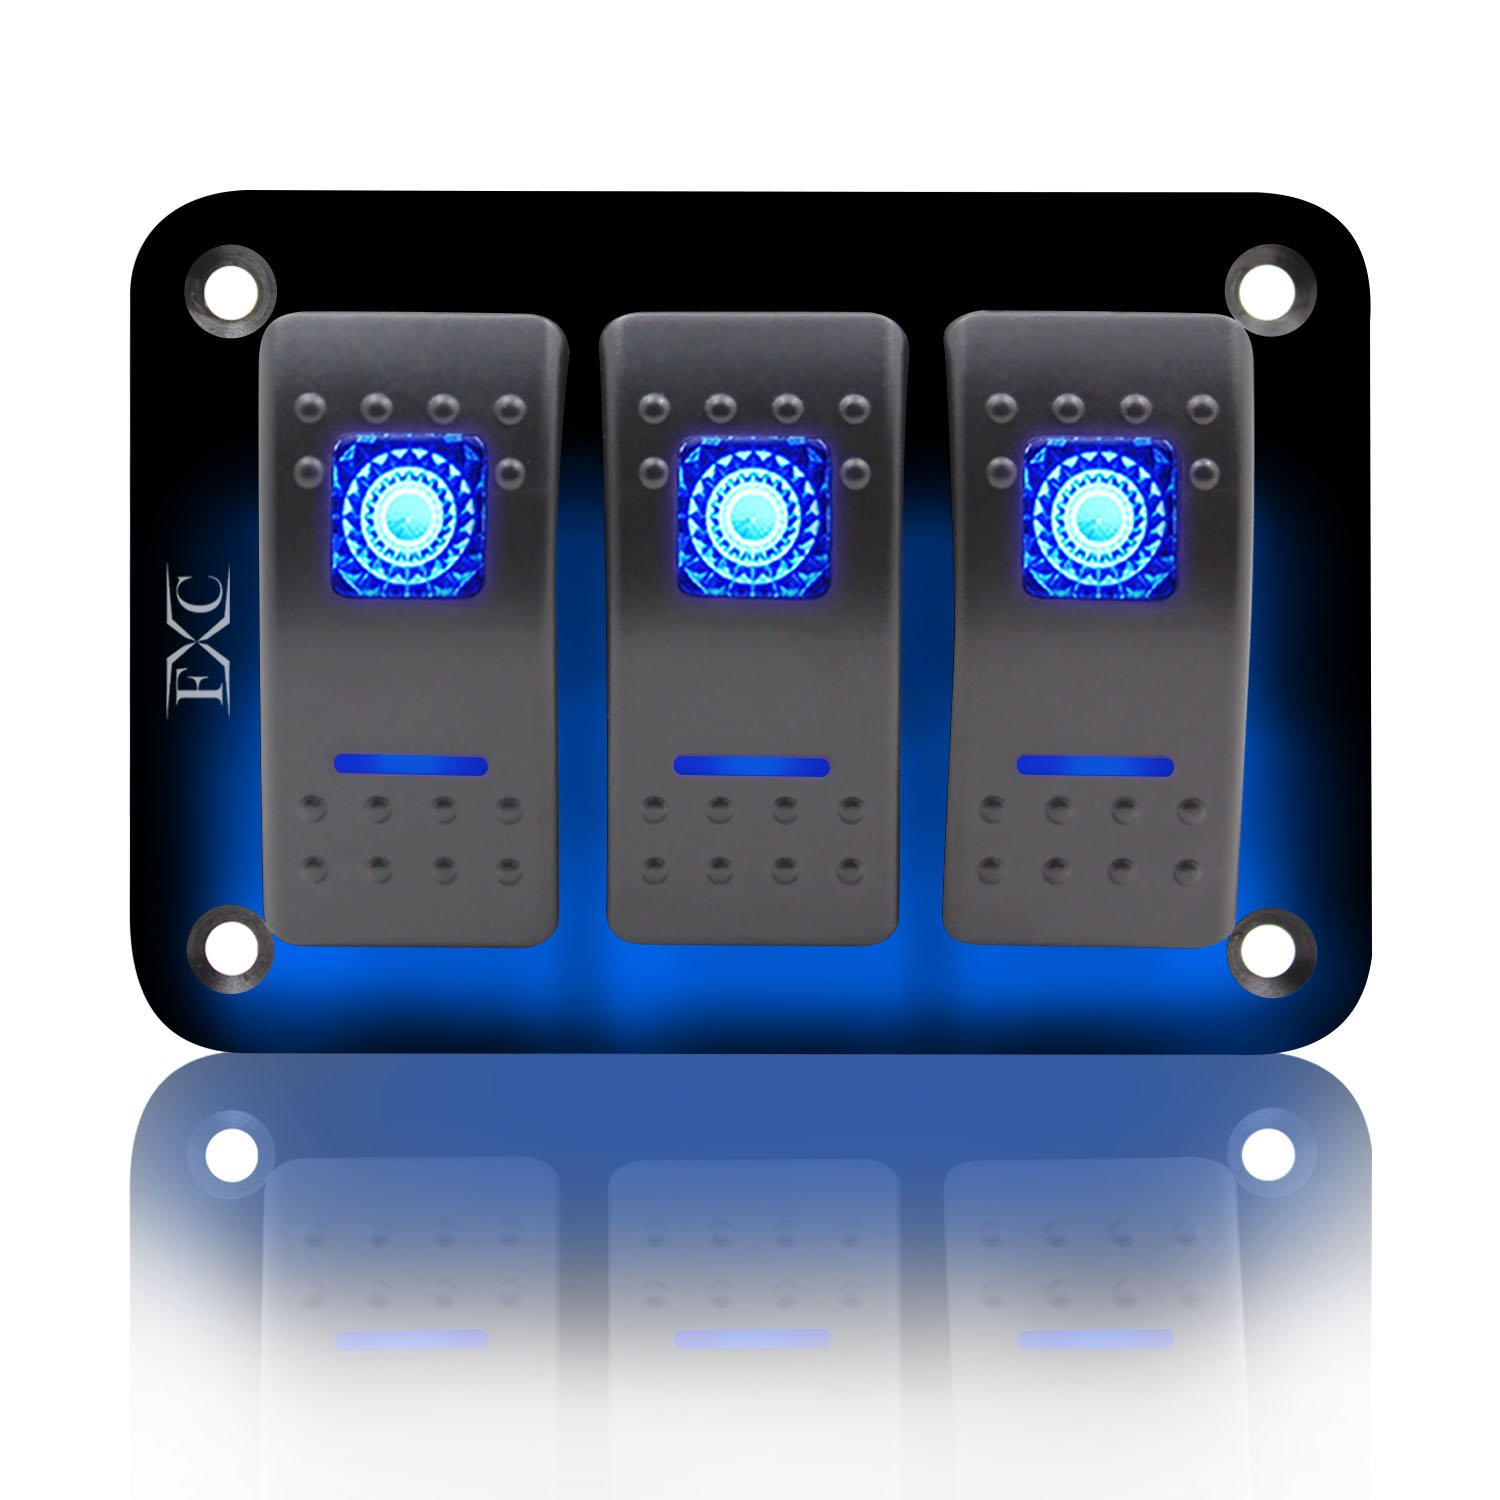 FXC Rocker Switch Aluminum Panel 3 Gang Toggle Switches Dash 5 Pin ON/OFF 2 LED Backlit for Boat Car Marine Blue